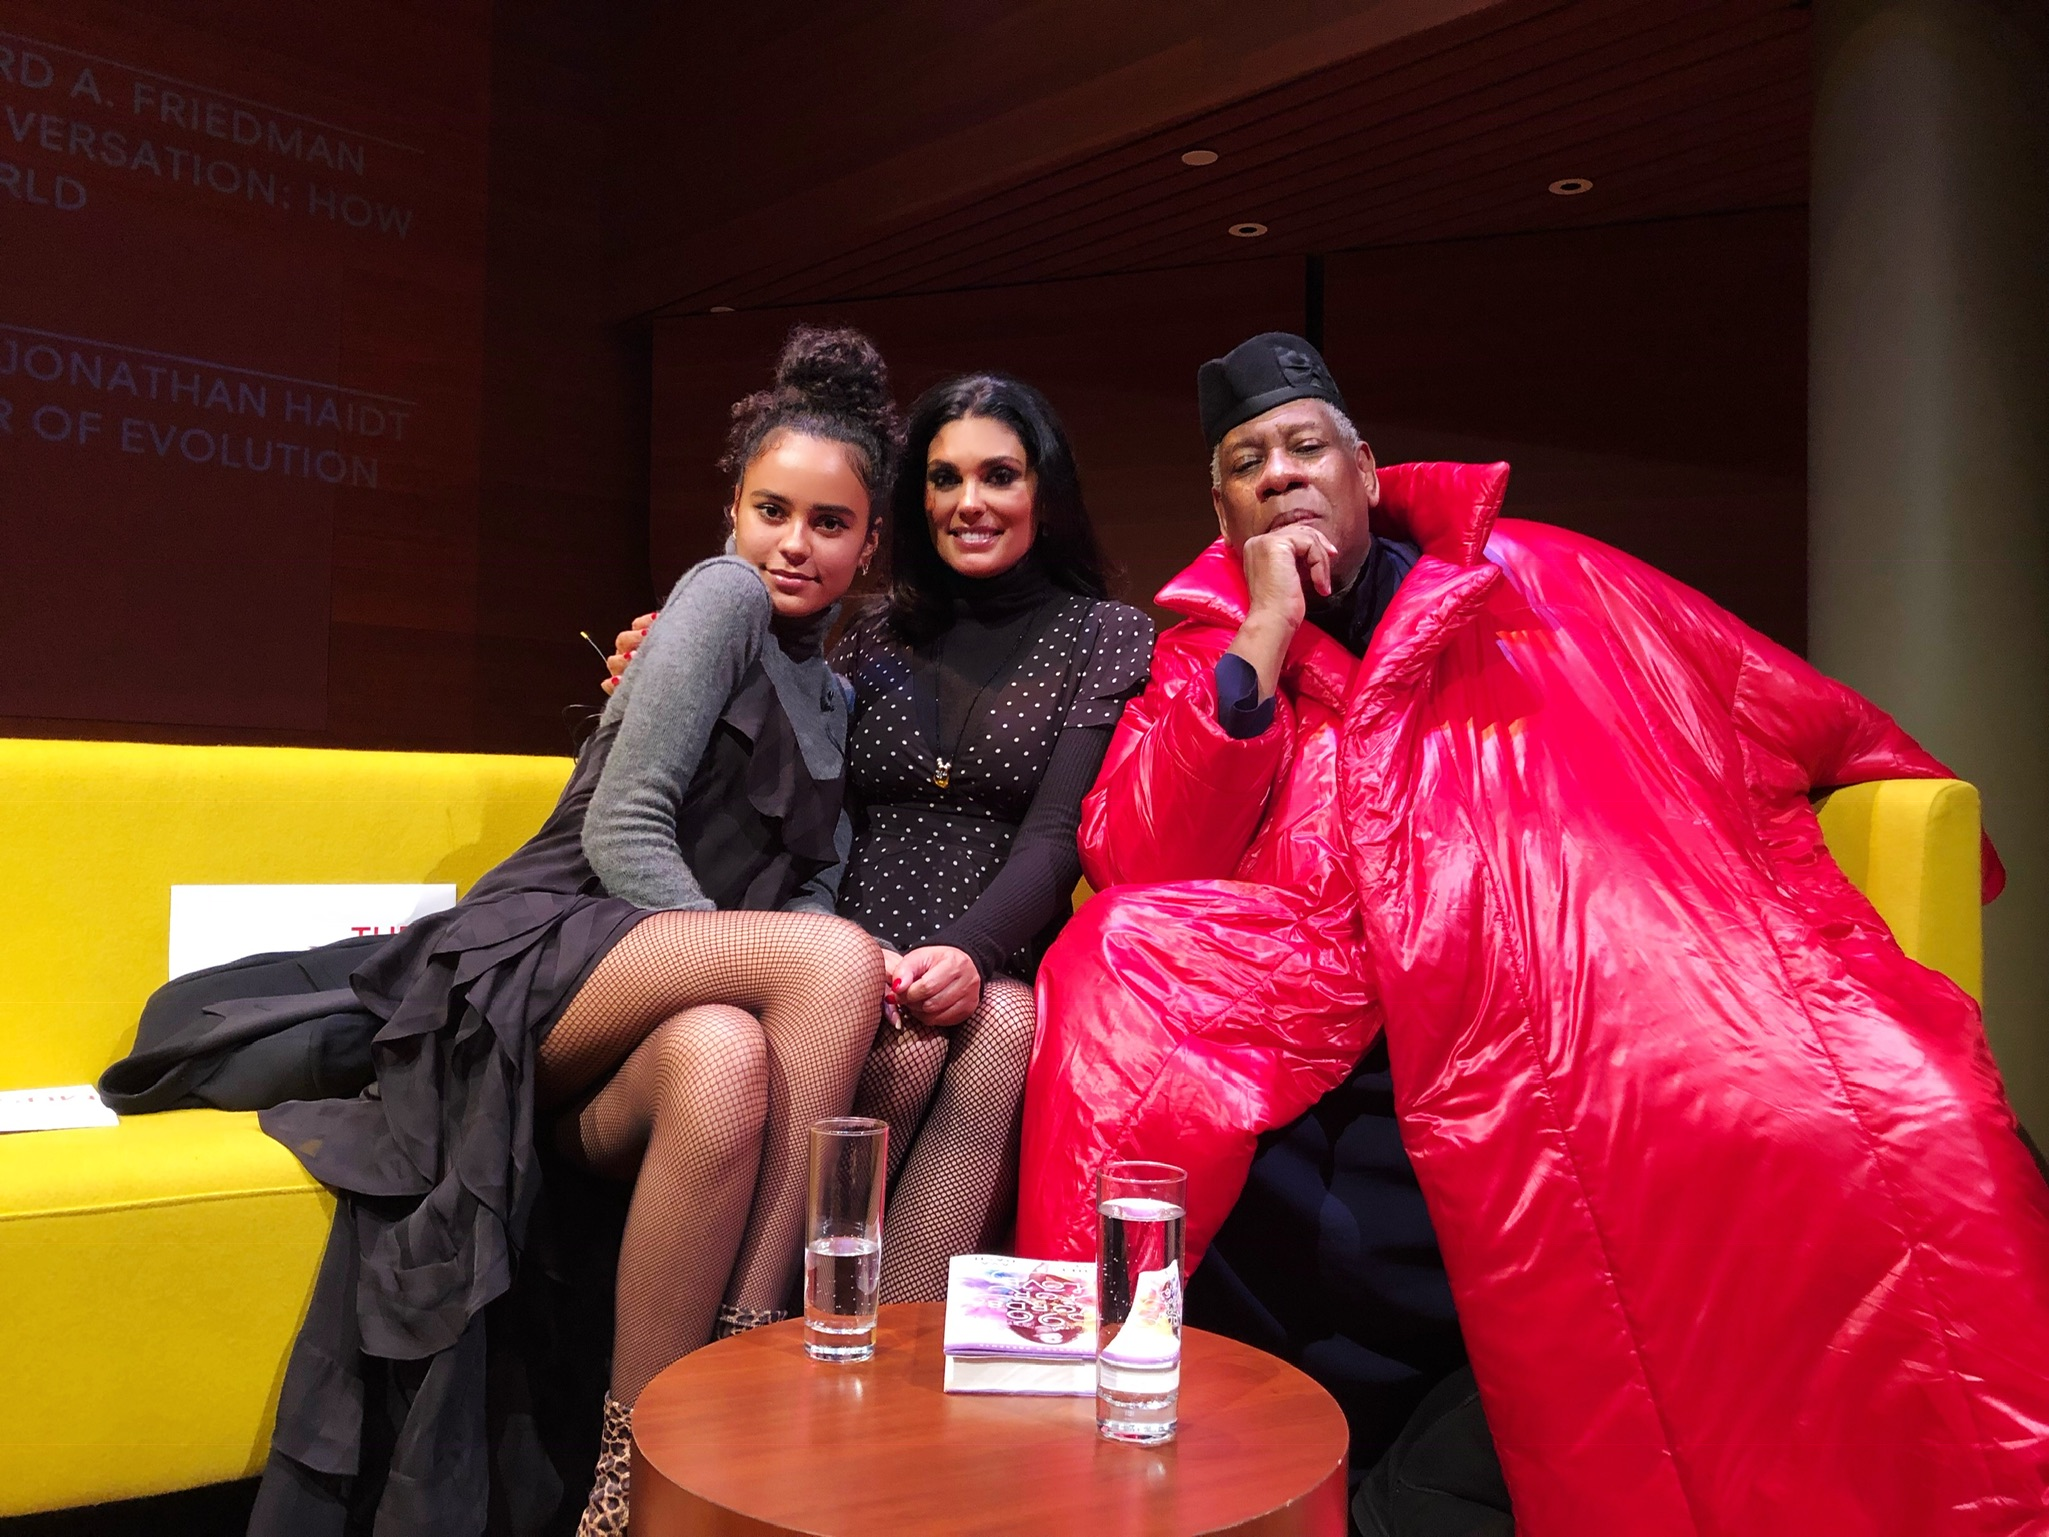 Ava Dash, Rachel Roy and Andre Leon Talley at a book signing at the Rubin Museum.